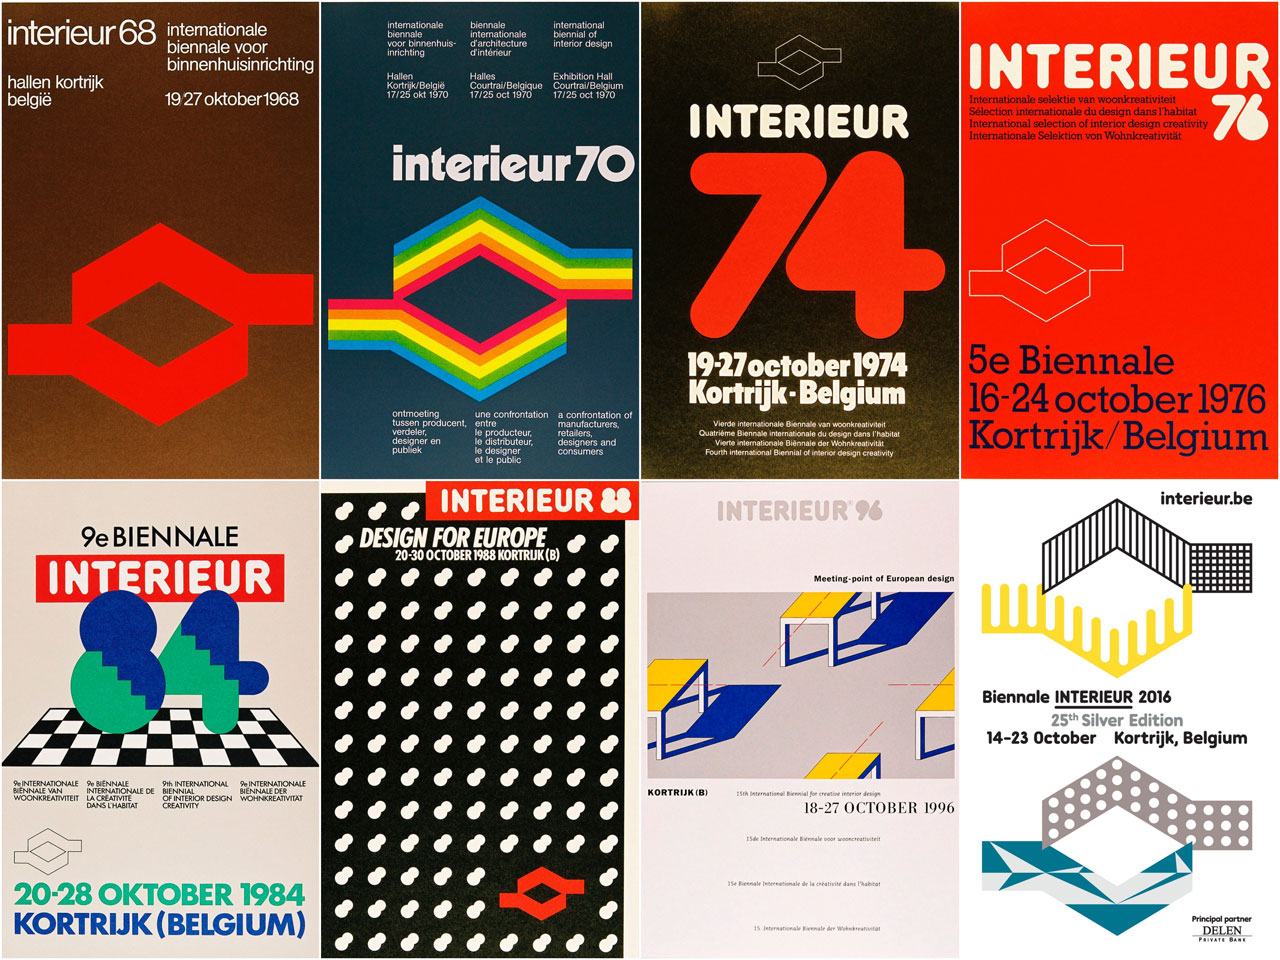 A selection of INTERIEUR posters from 1968 till the present were on display at the exhibition on the occasion of the 25th anniversary of BIENNALE INTERIEUR at the Voka Headquarters in Kortrijk.